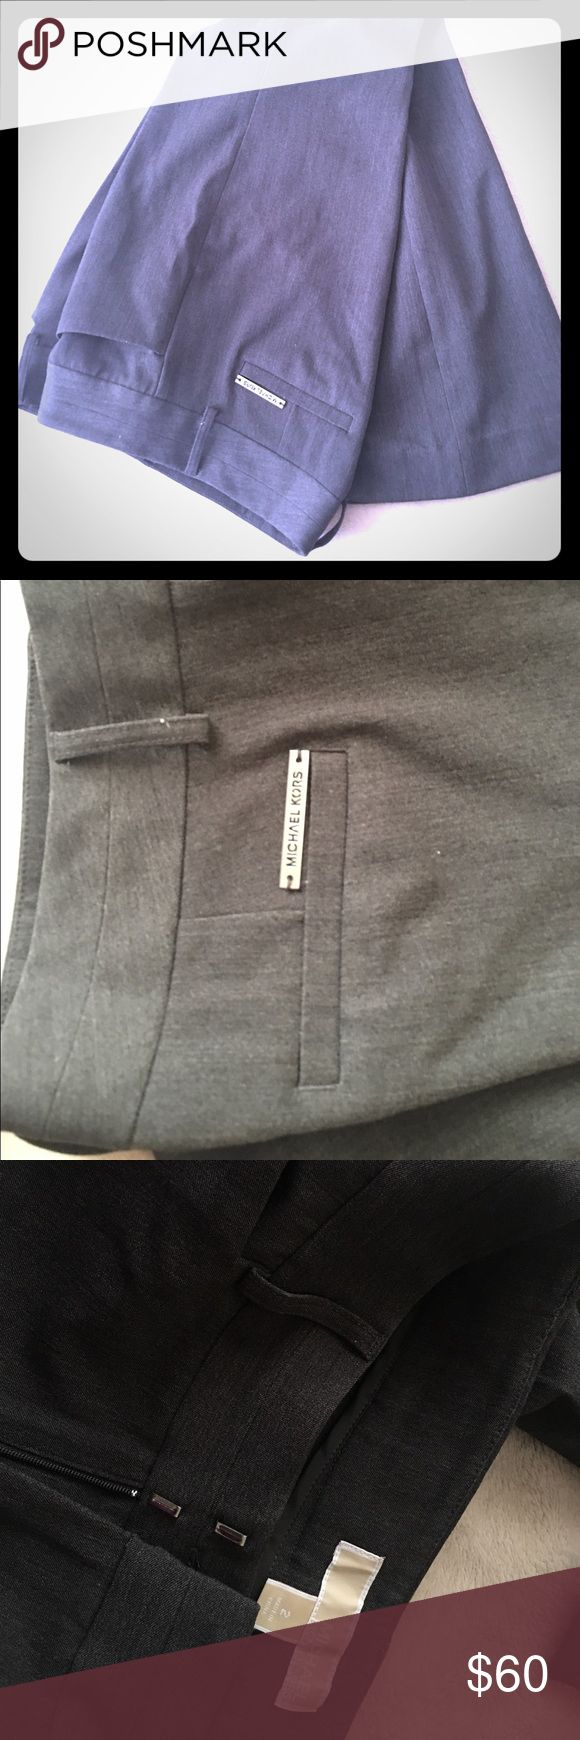 🆕 Michael Kors gray pant Perfect for work gray pant the excellent material with tags and bag from the store MK  plus 🆓 gift 🎁 for your purchase ❤️📲📦 MICHAEL Michael Kors Pants Ankle & Cropped